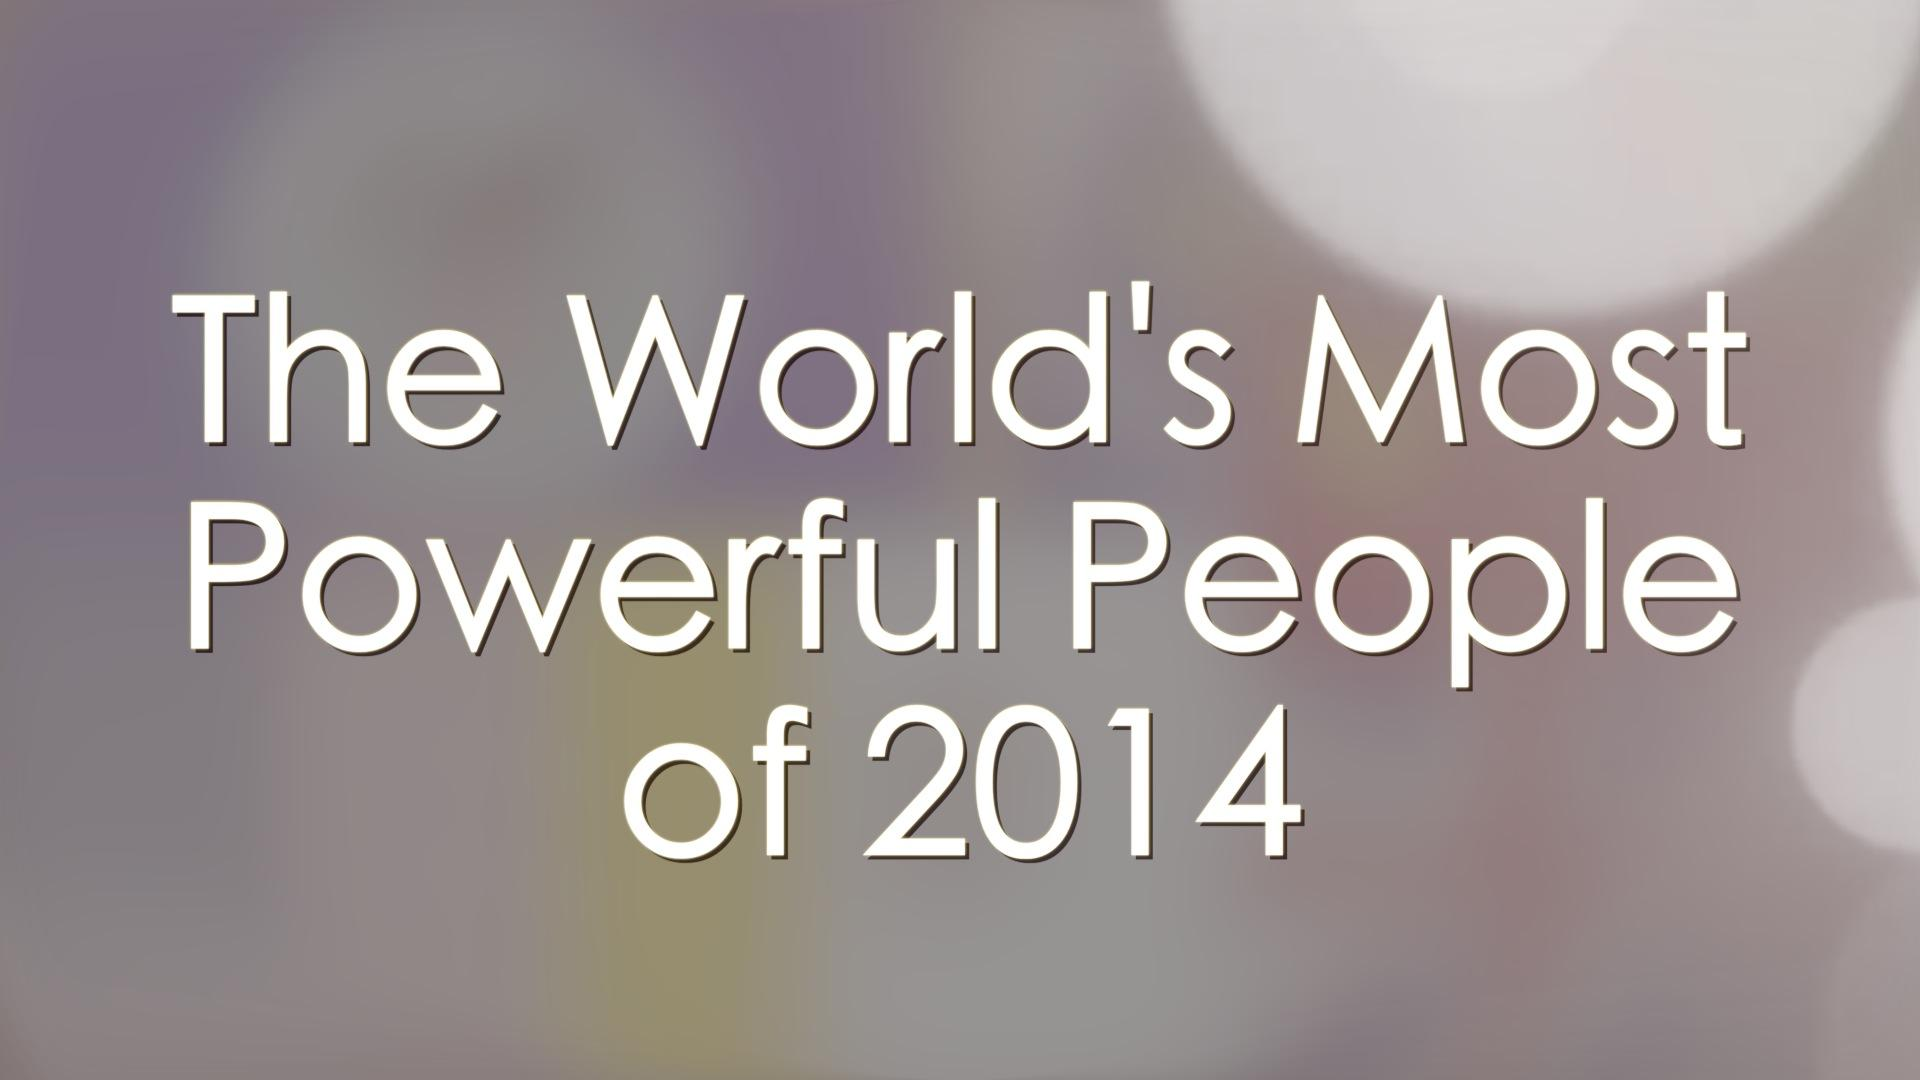 Running The World: Most Powerful People of 2014